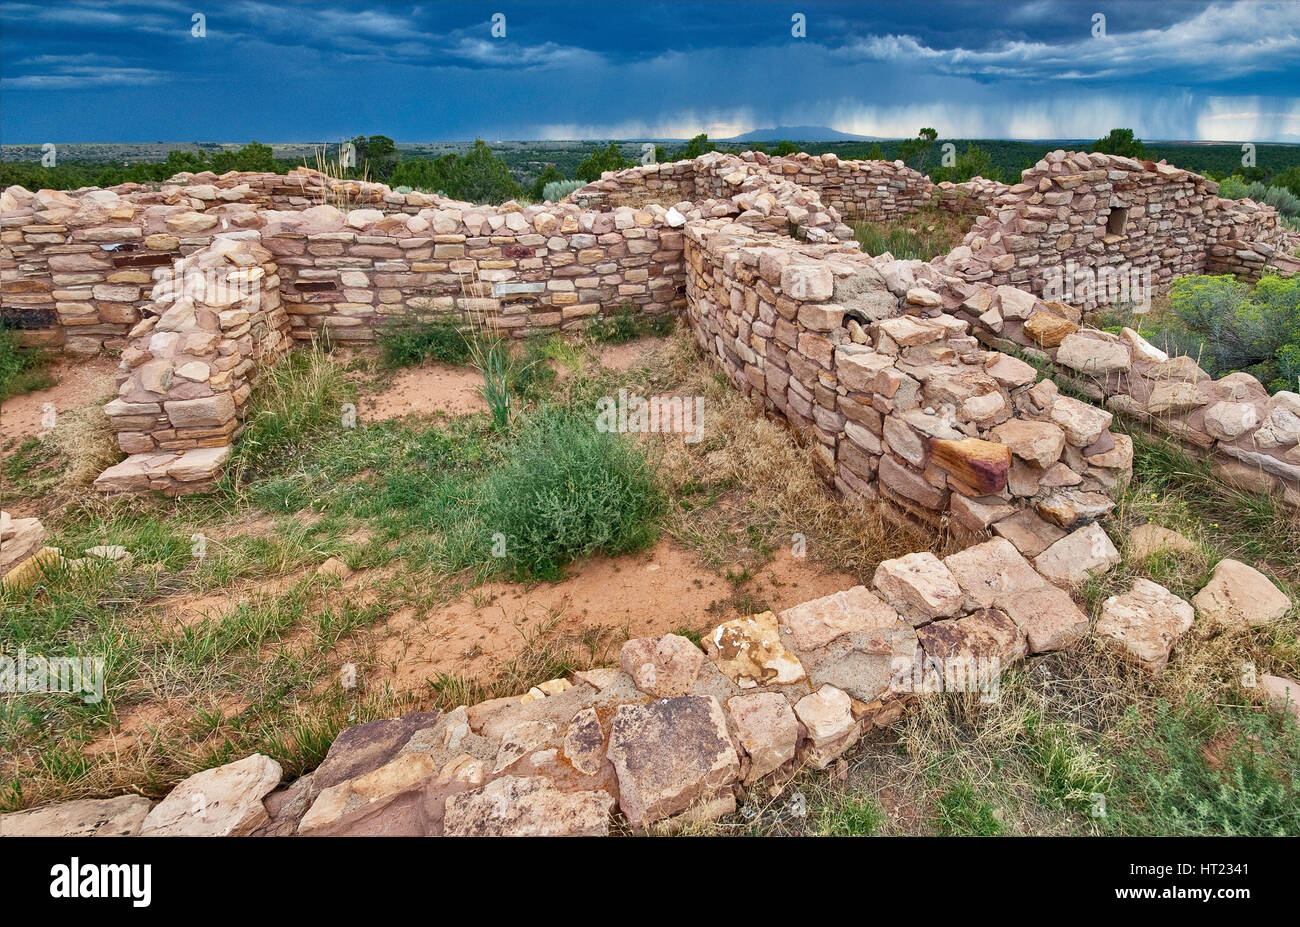 Summer thunderstorm over ruins of Lowry Pueblo, Anasazi ruins at Canyons of the Ancients National Monument, Colorado, - Stock Image